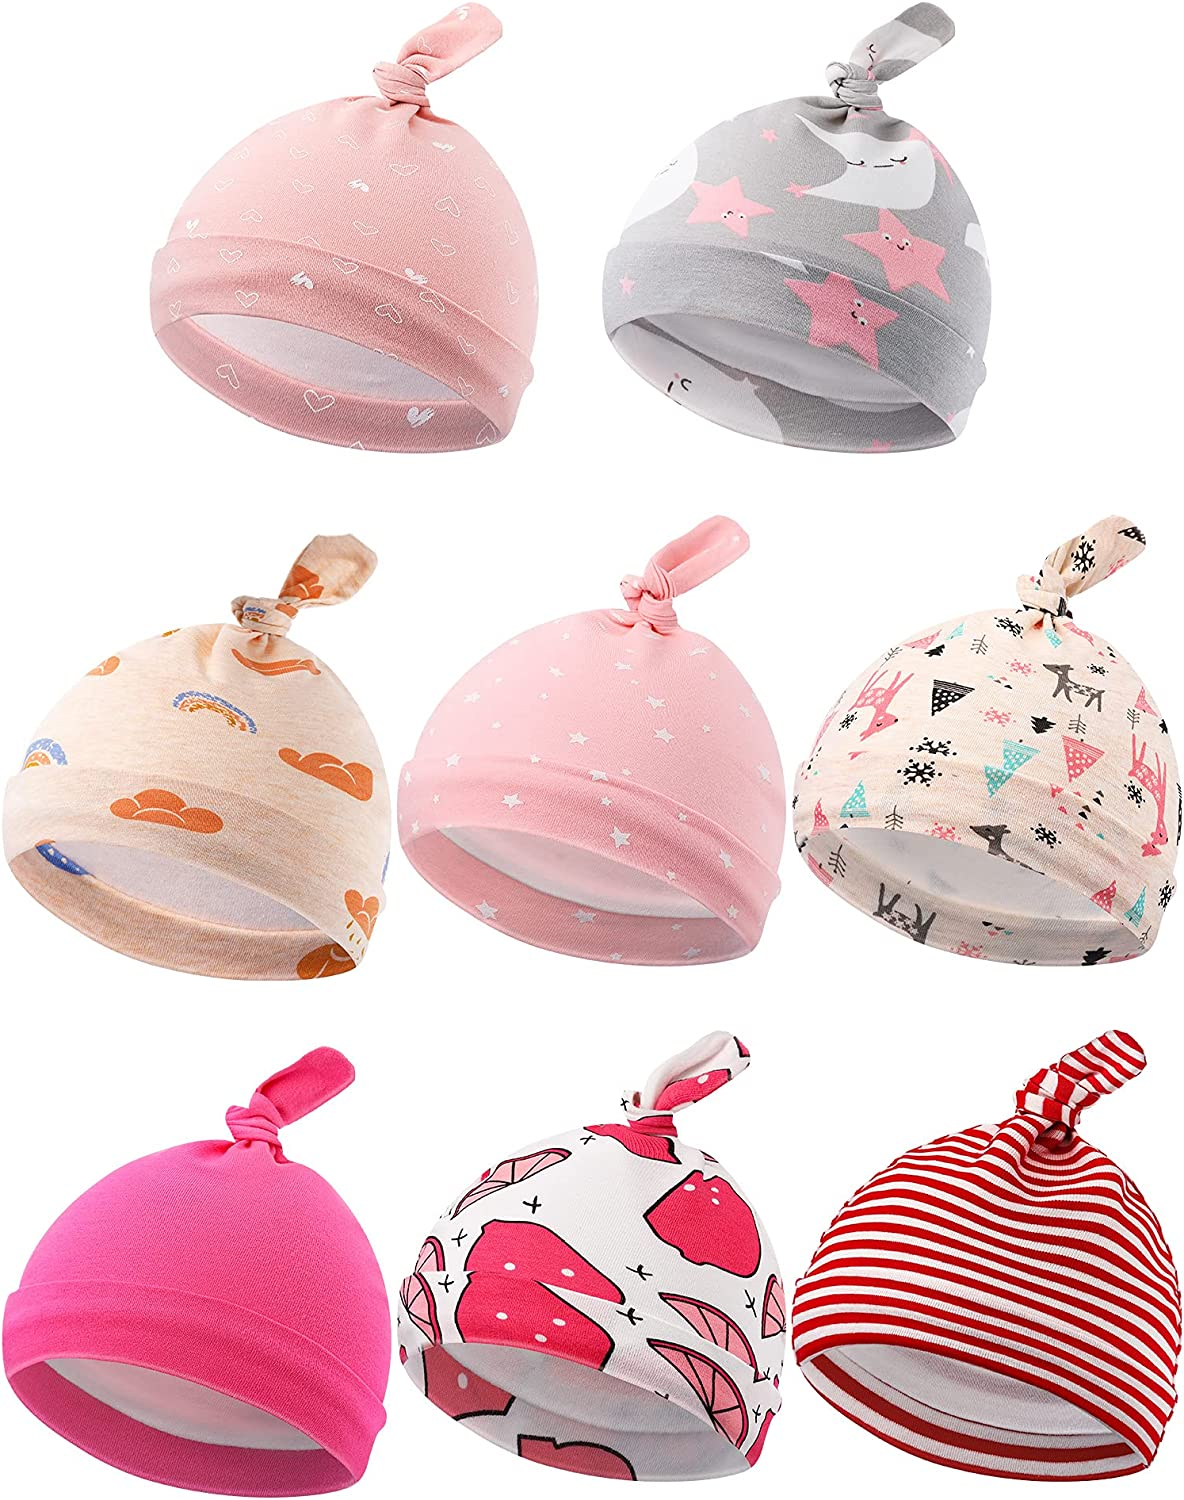 8 Pieces Newborn Infant Hat Knot Beanie Stretchy Knotted Cap for Baby 0-6 Months